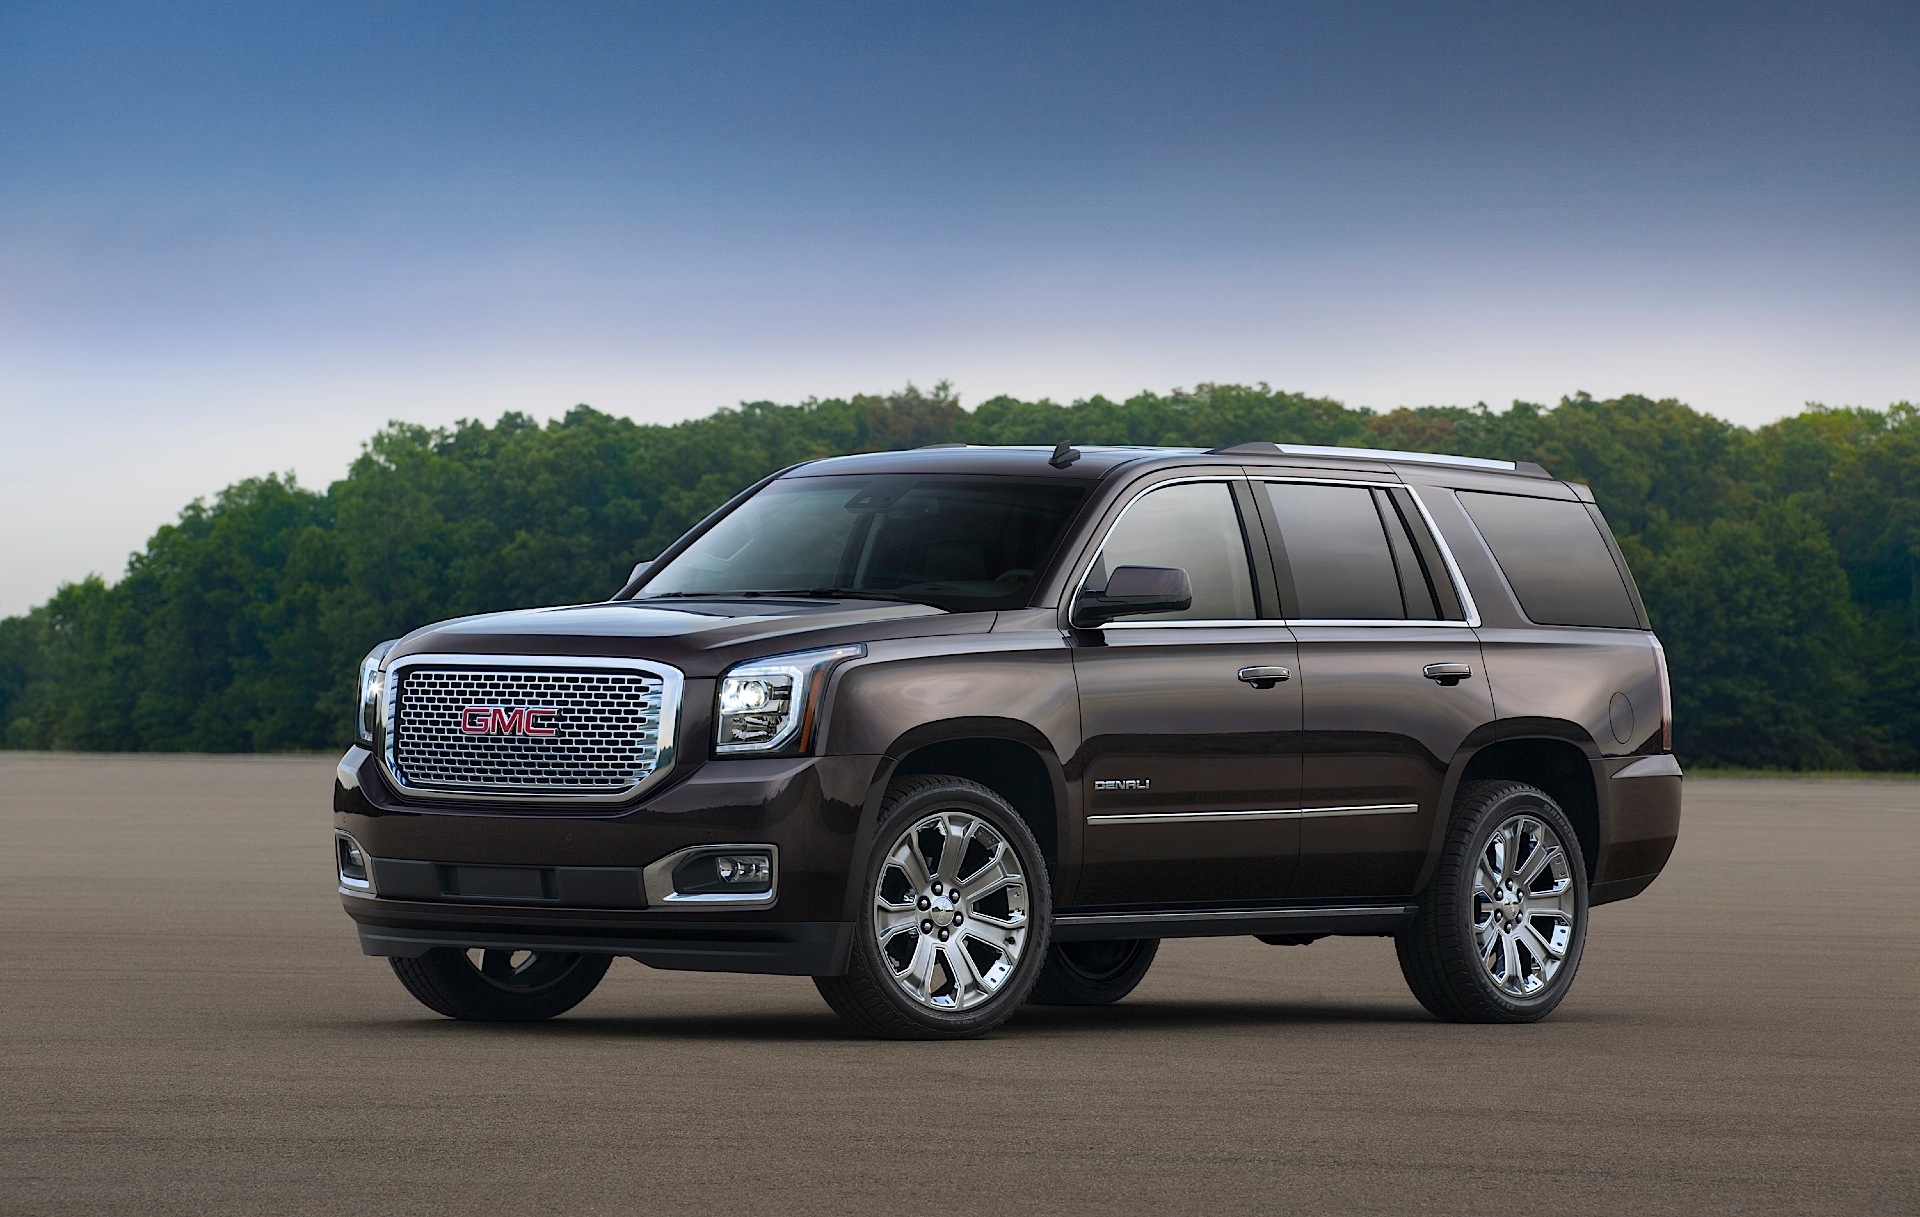 hd yukon wallpapers wallpaper denali images wide pixel gmc and car